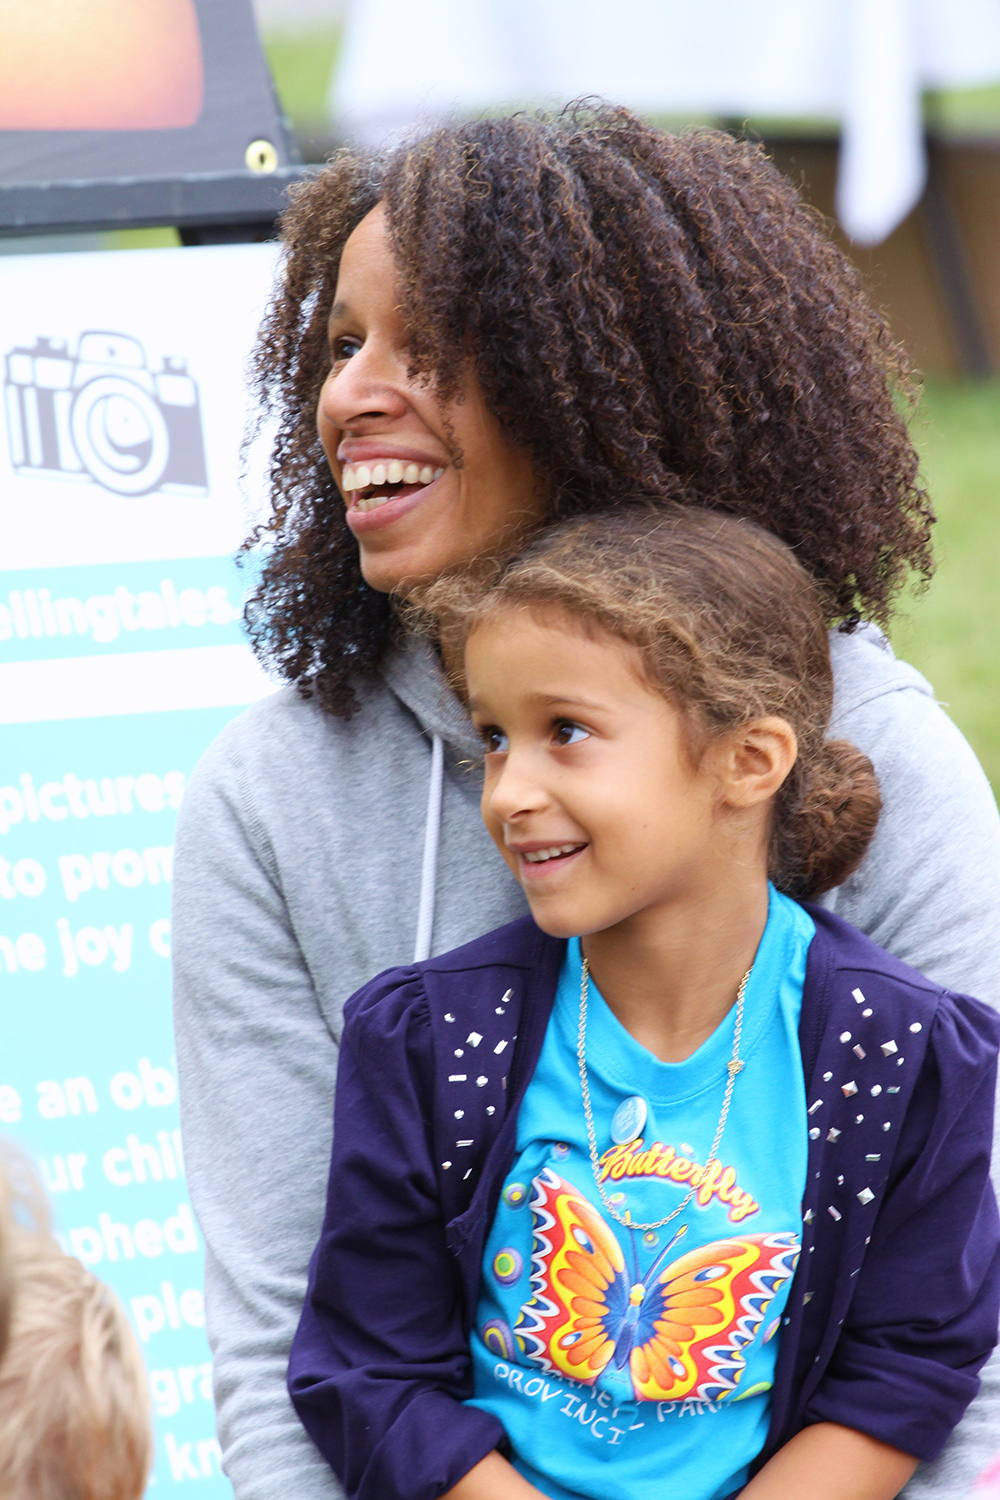 Mother and daughter watching a performance at the Telling Tales Festival